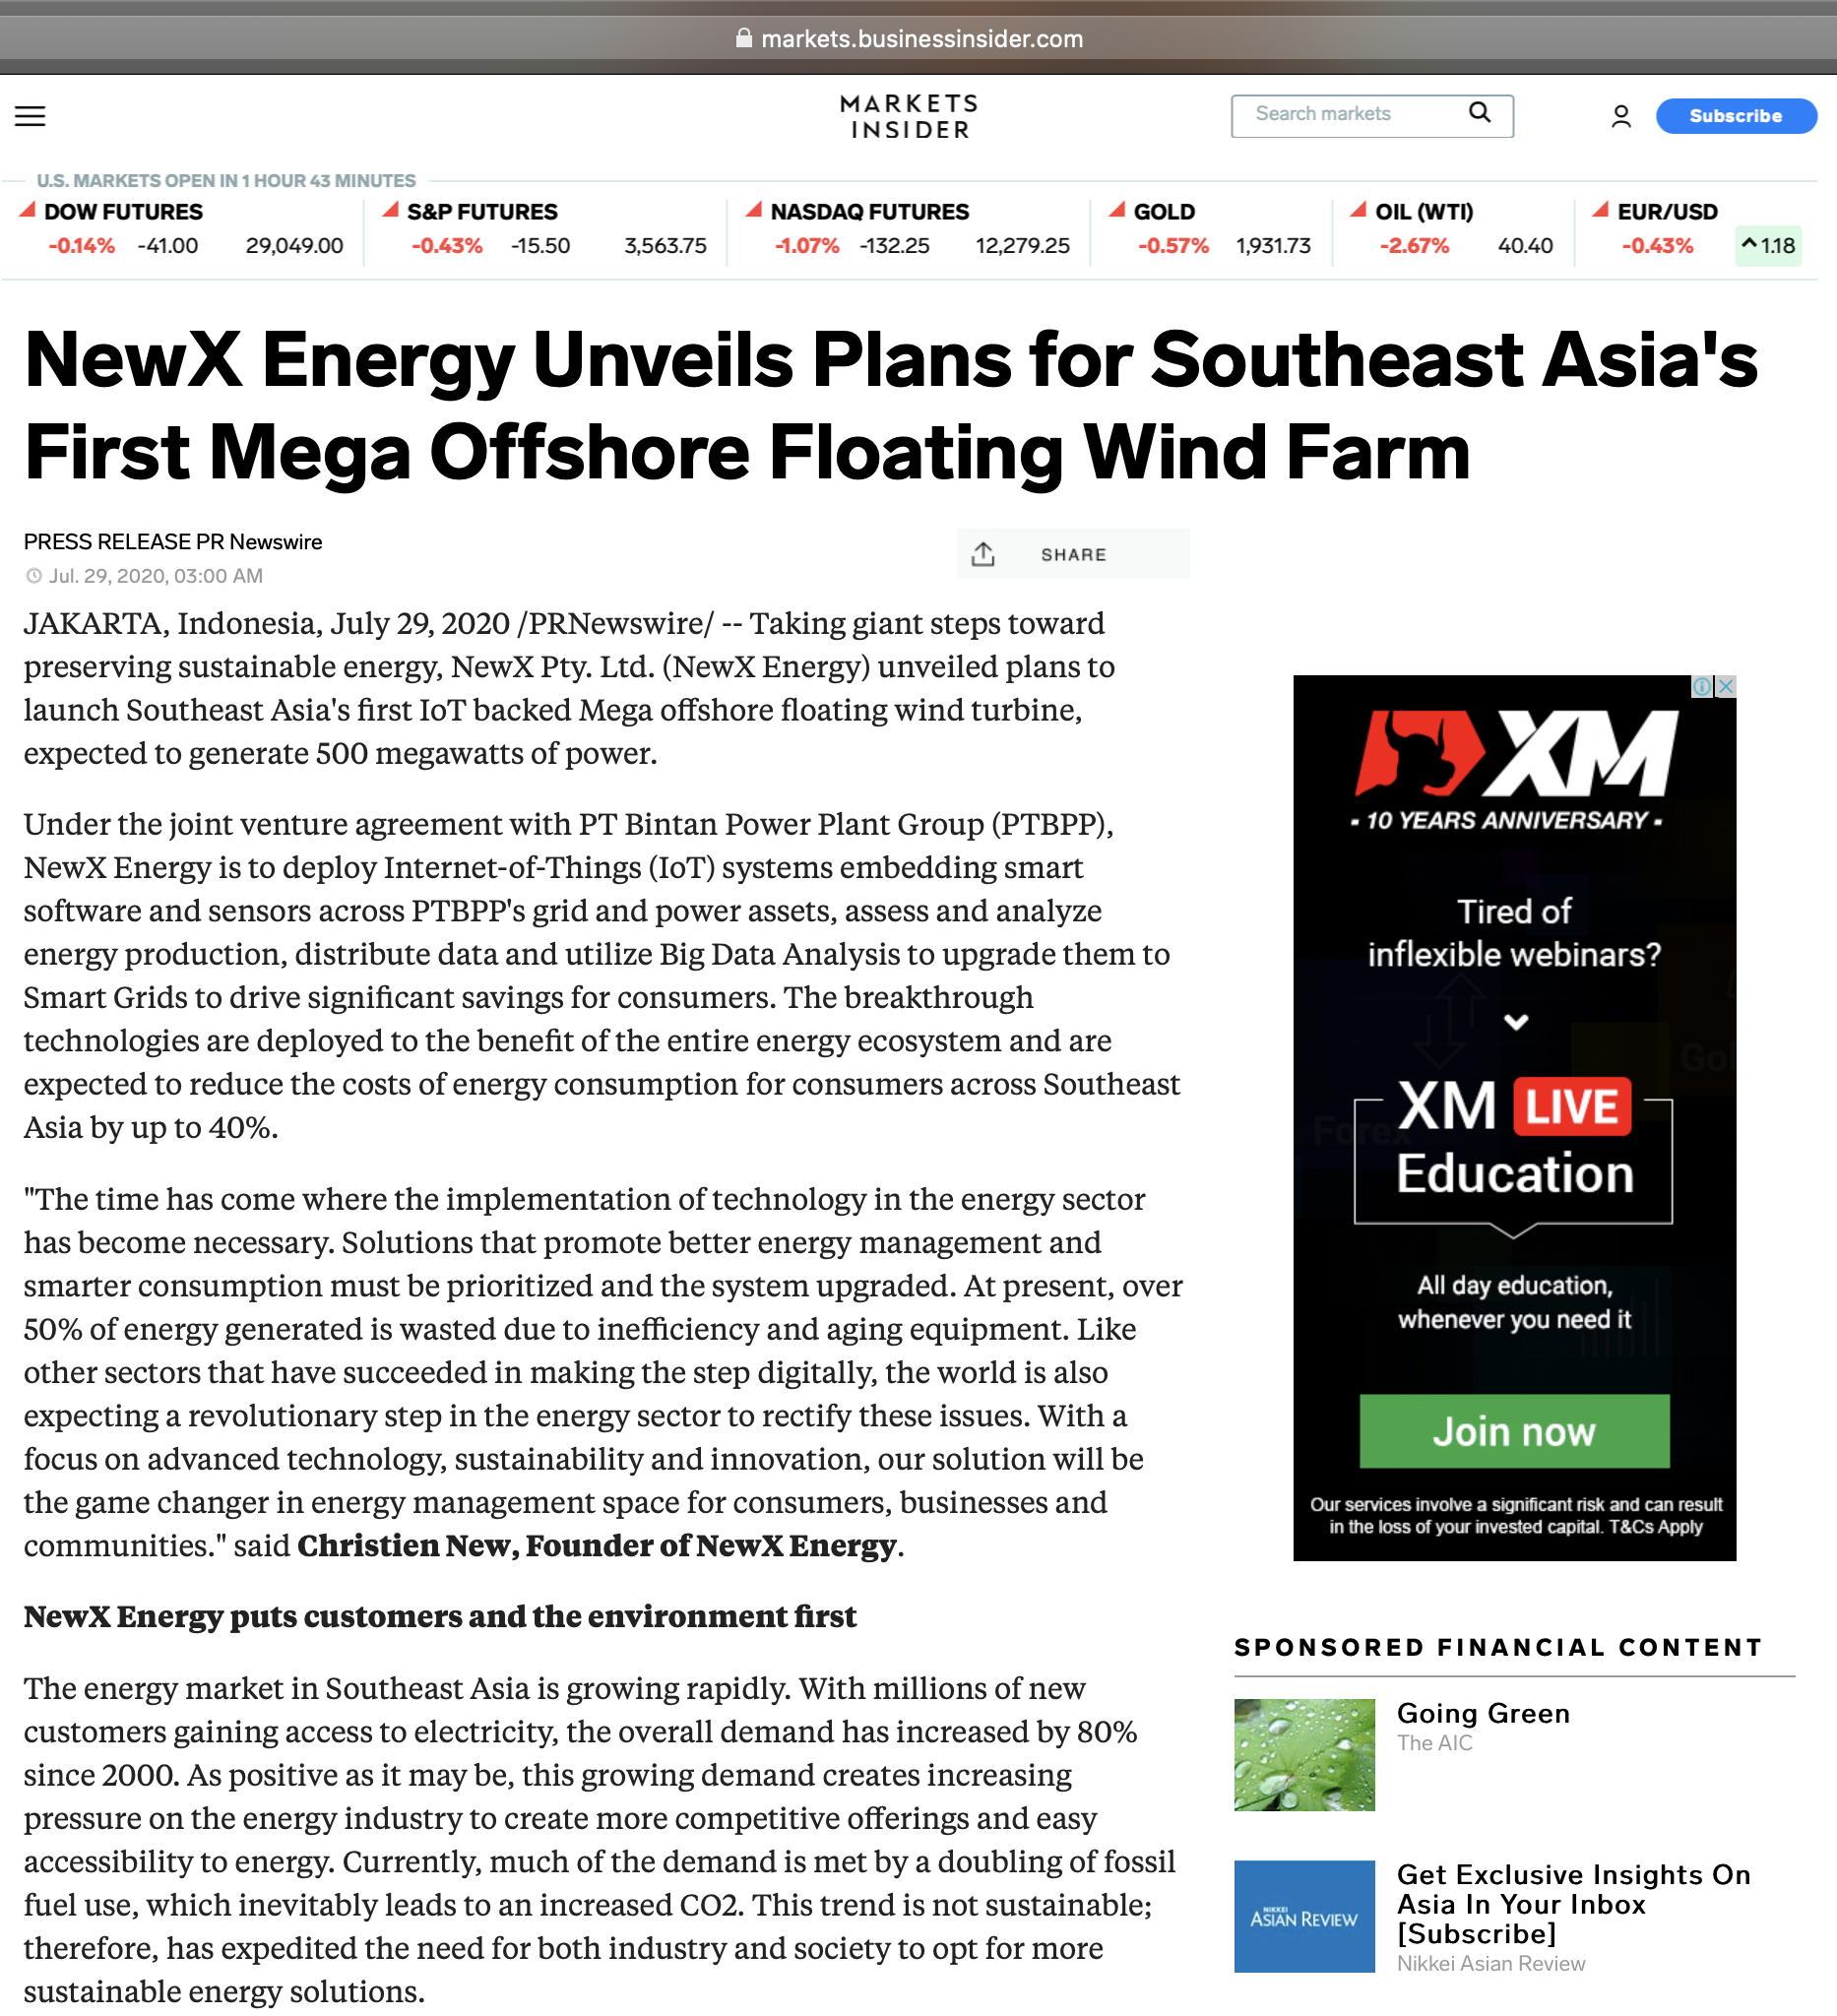 NewX Energy Unveils Plans for Southeast Asia's First Mega Offshore Floating Wind Farm